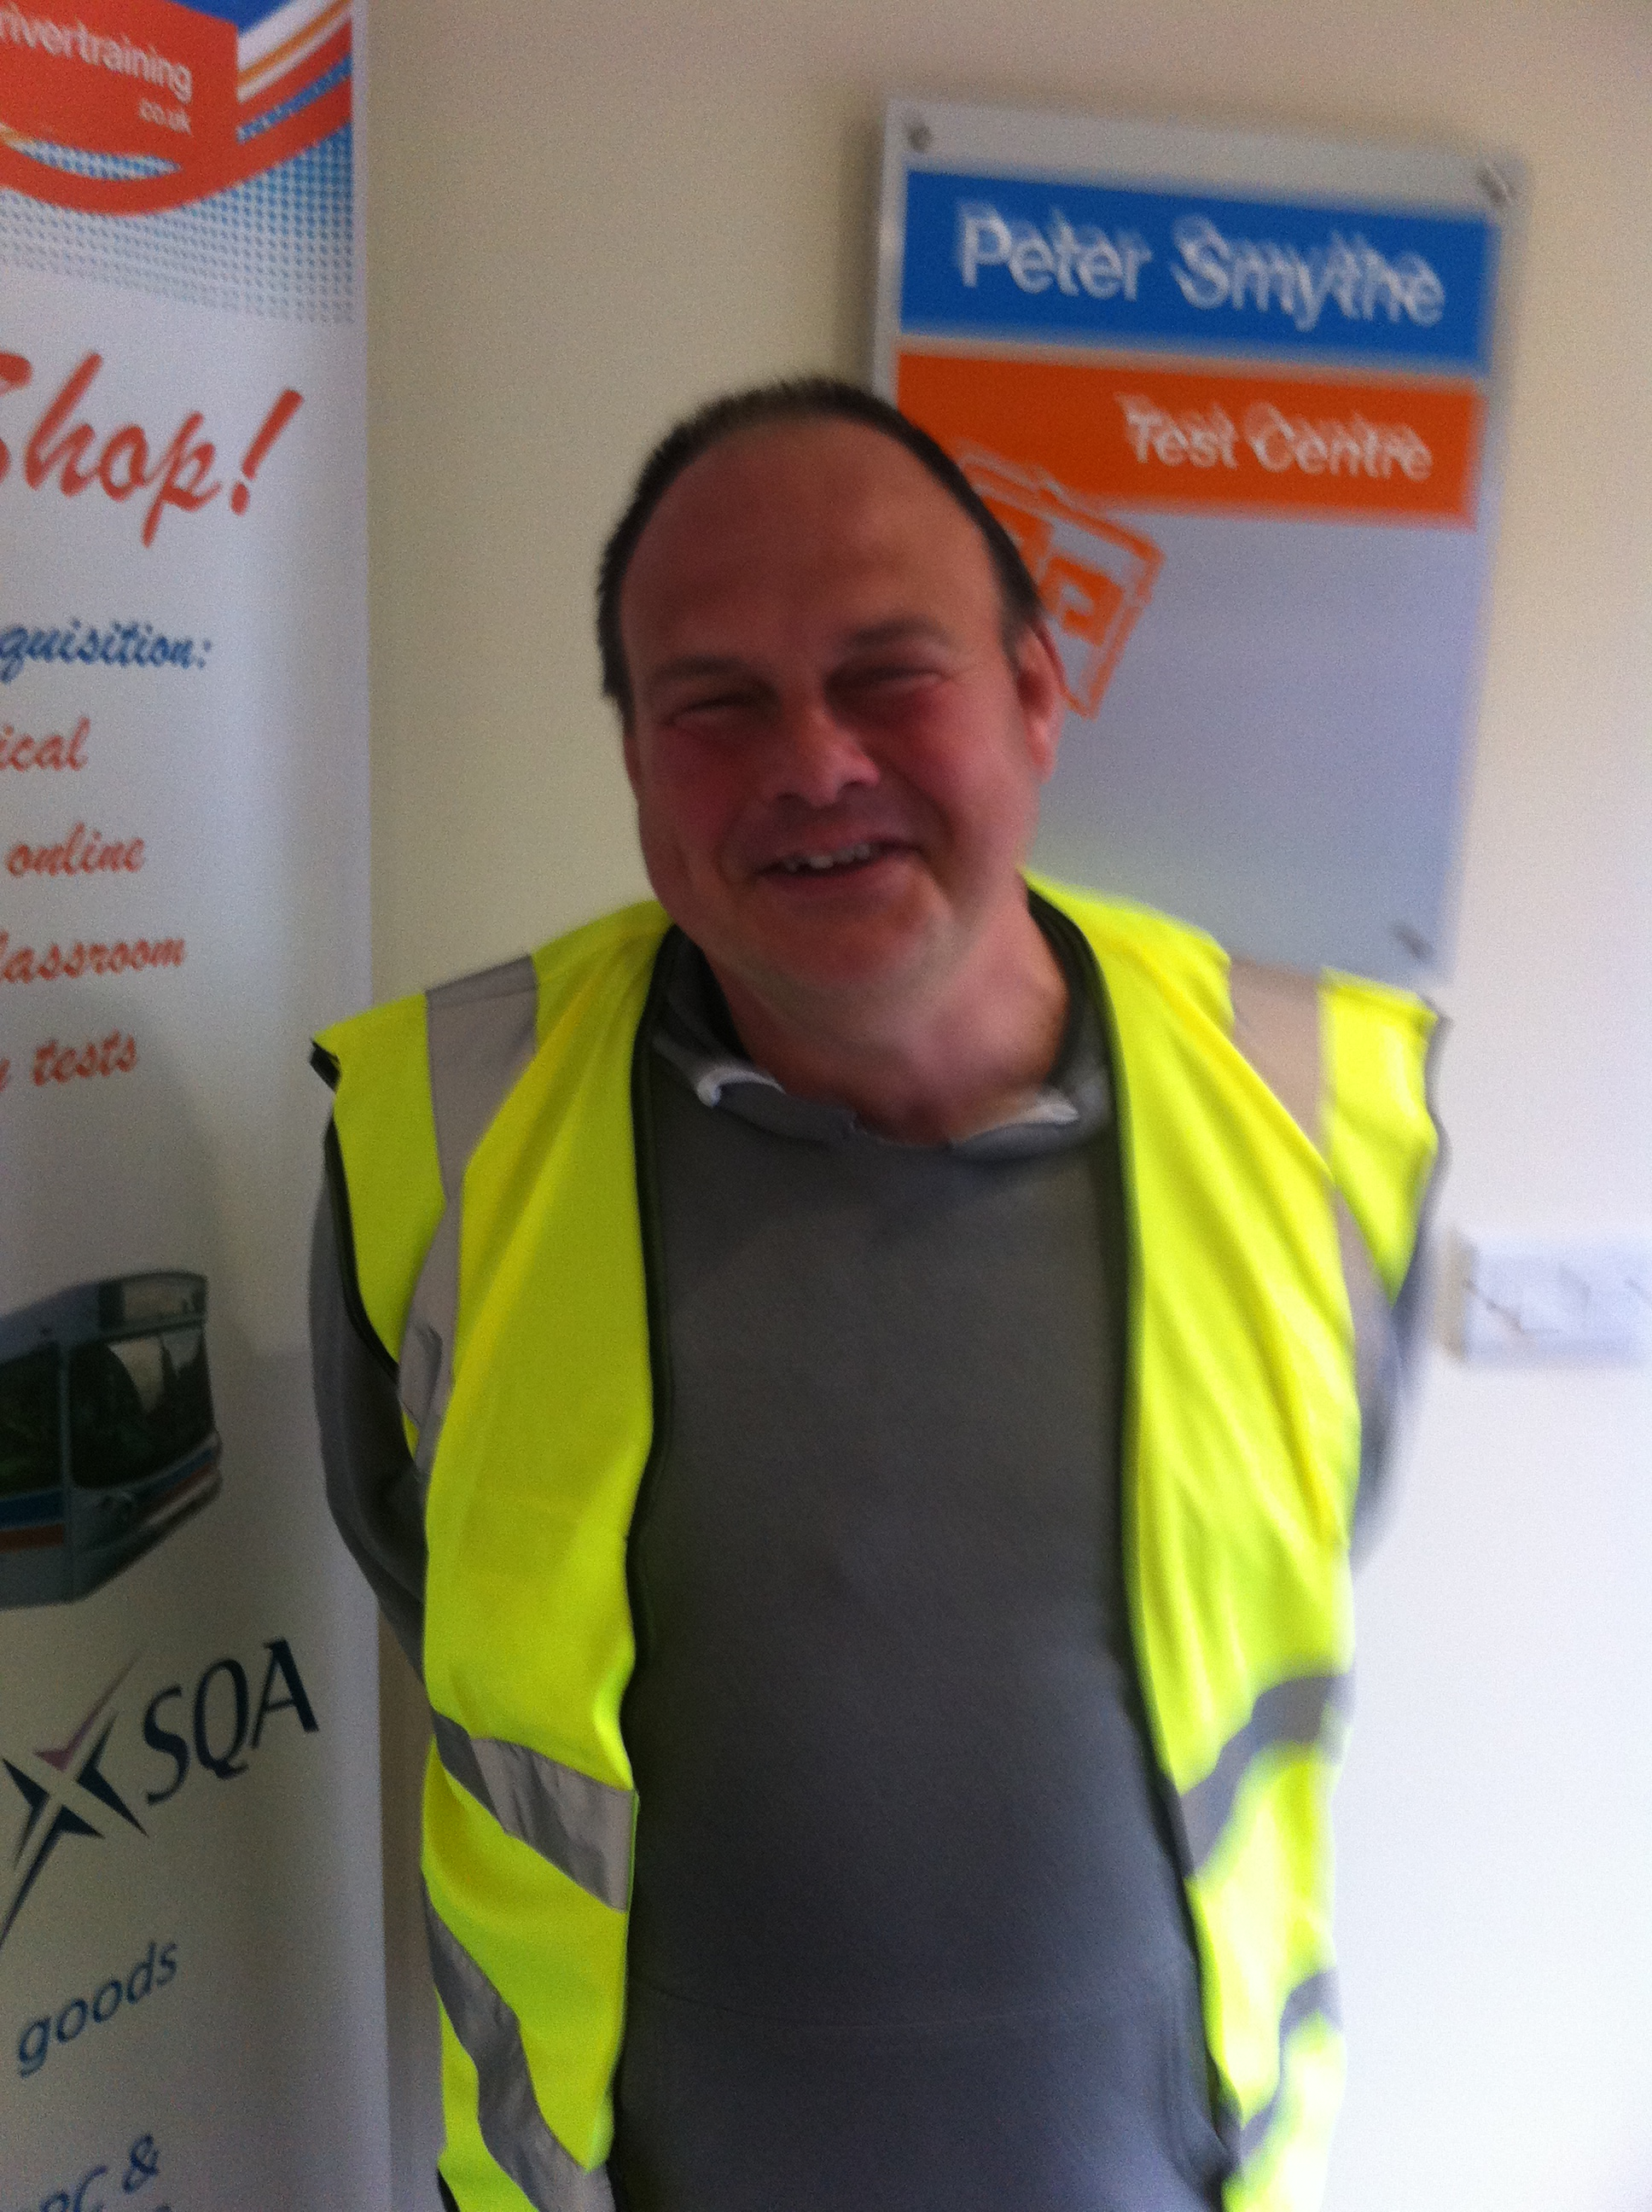 Dale Slaney from Lincoln PASSED CPC MOD 4 #ipassedwithpstt